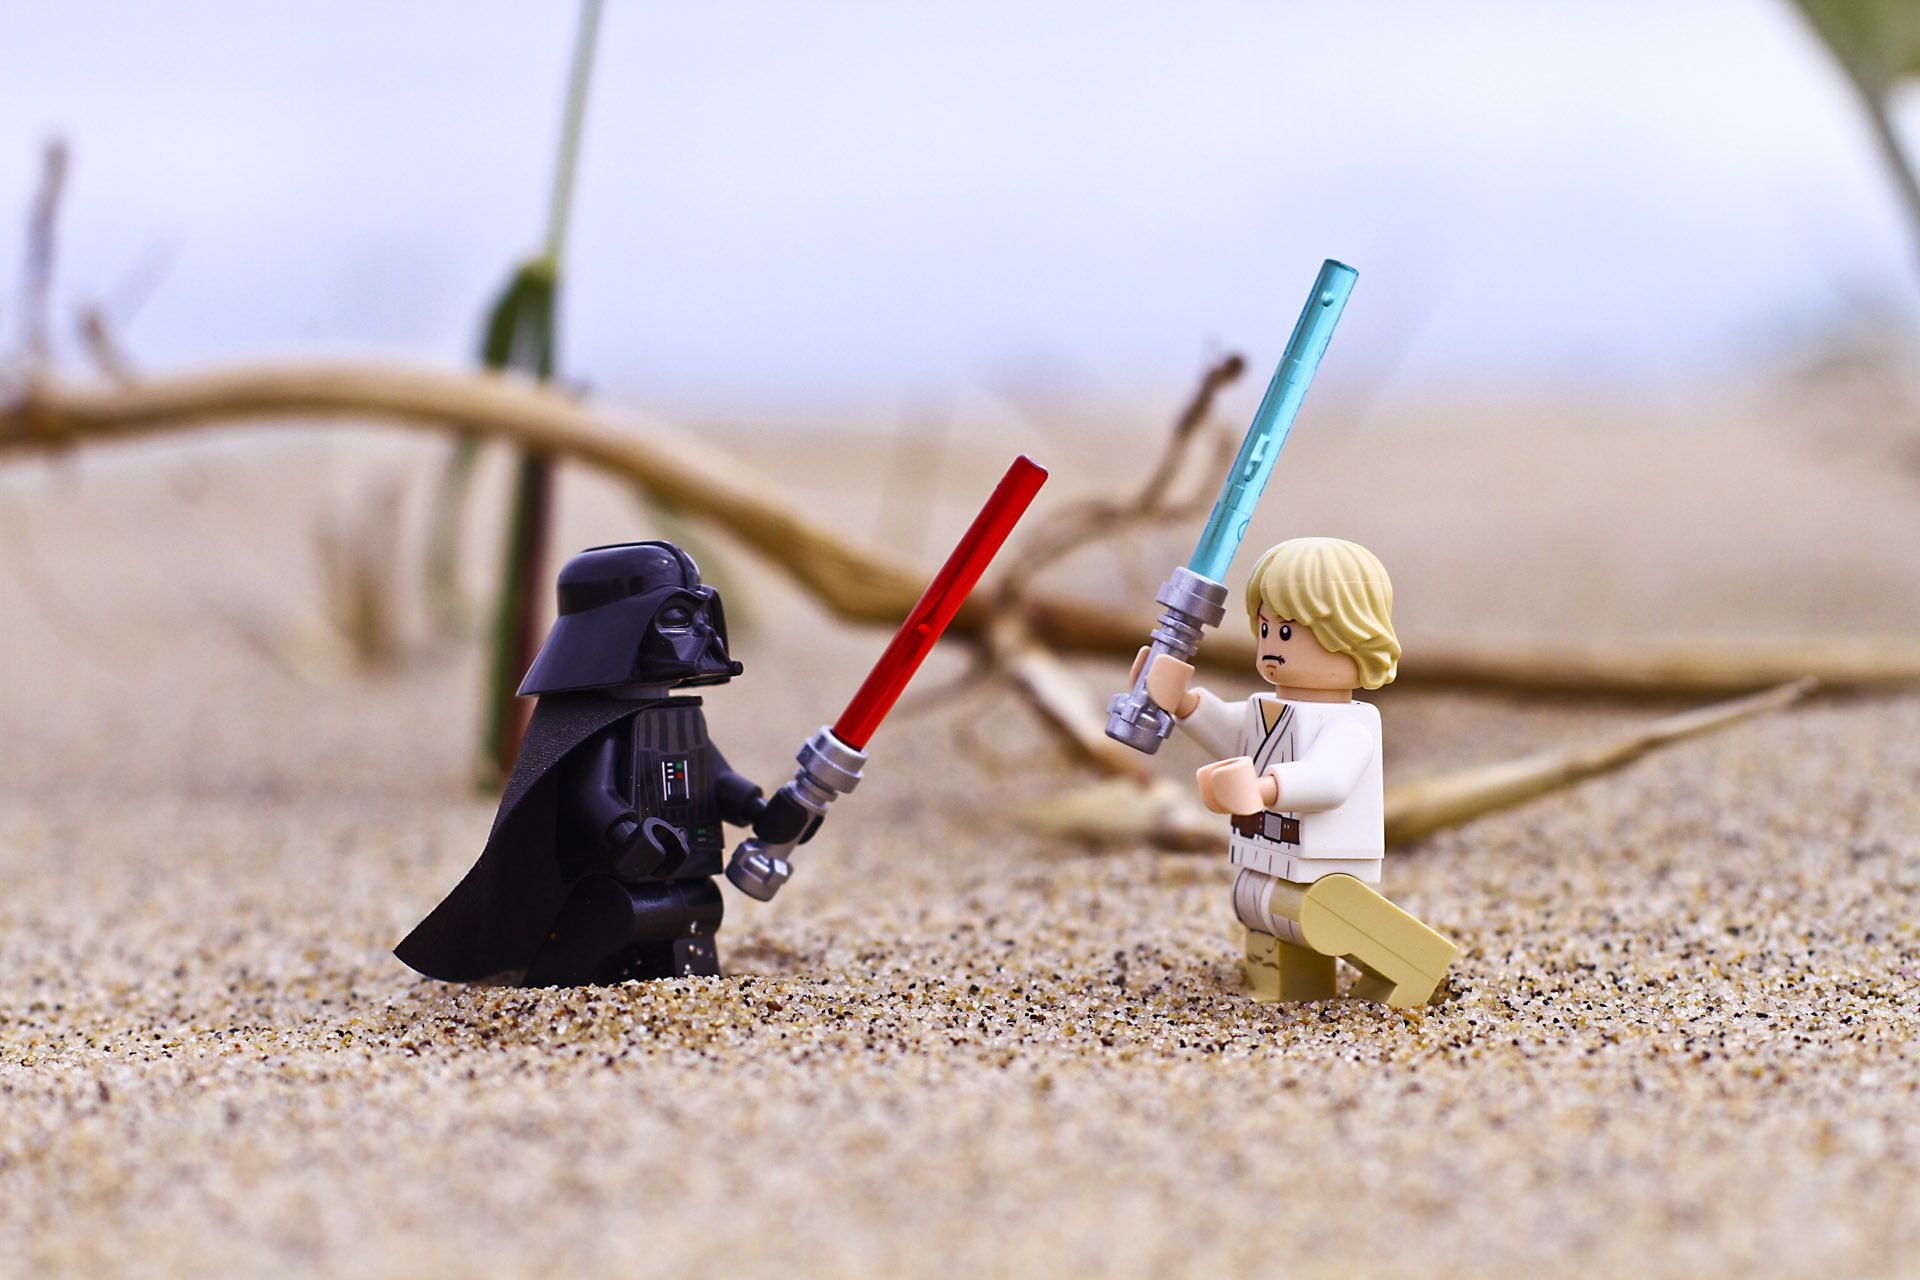 Epic star wars scenes google search star wars party pinterest epic star wars scenes google search star wars party pinterest star wars party voltagebd Images